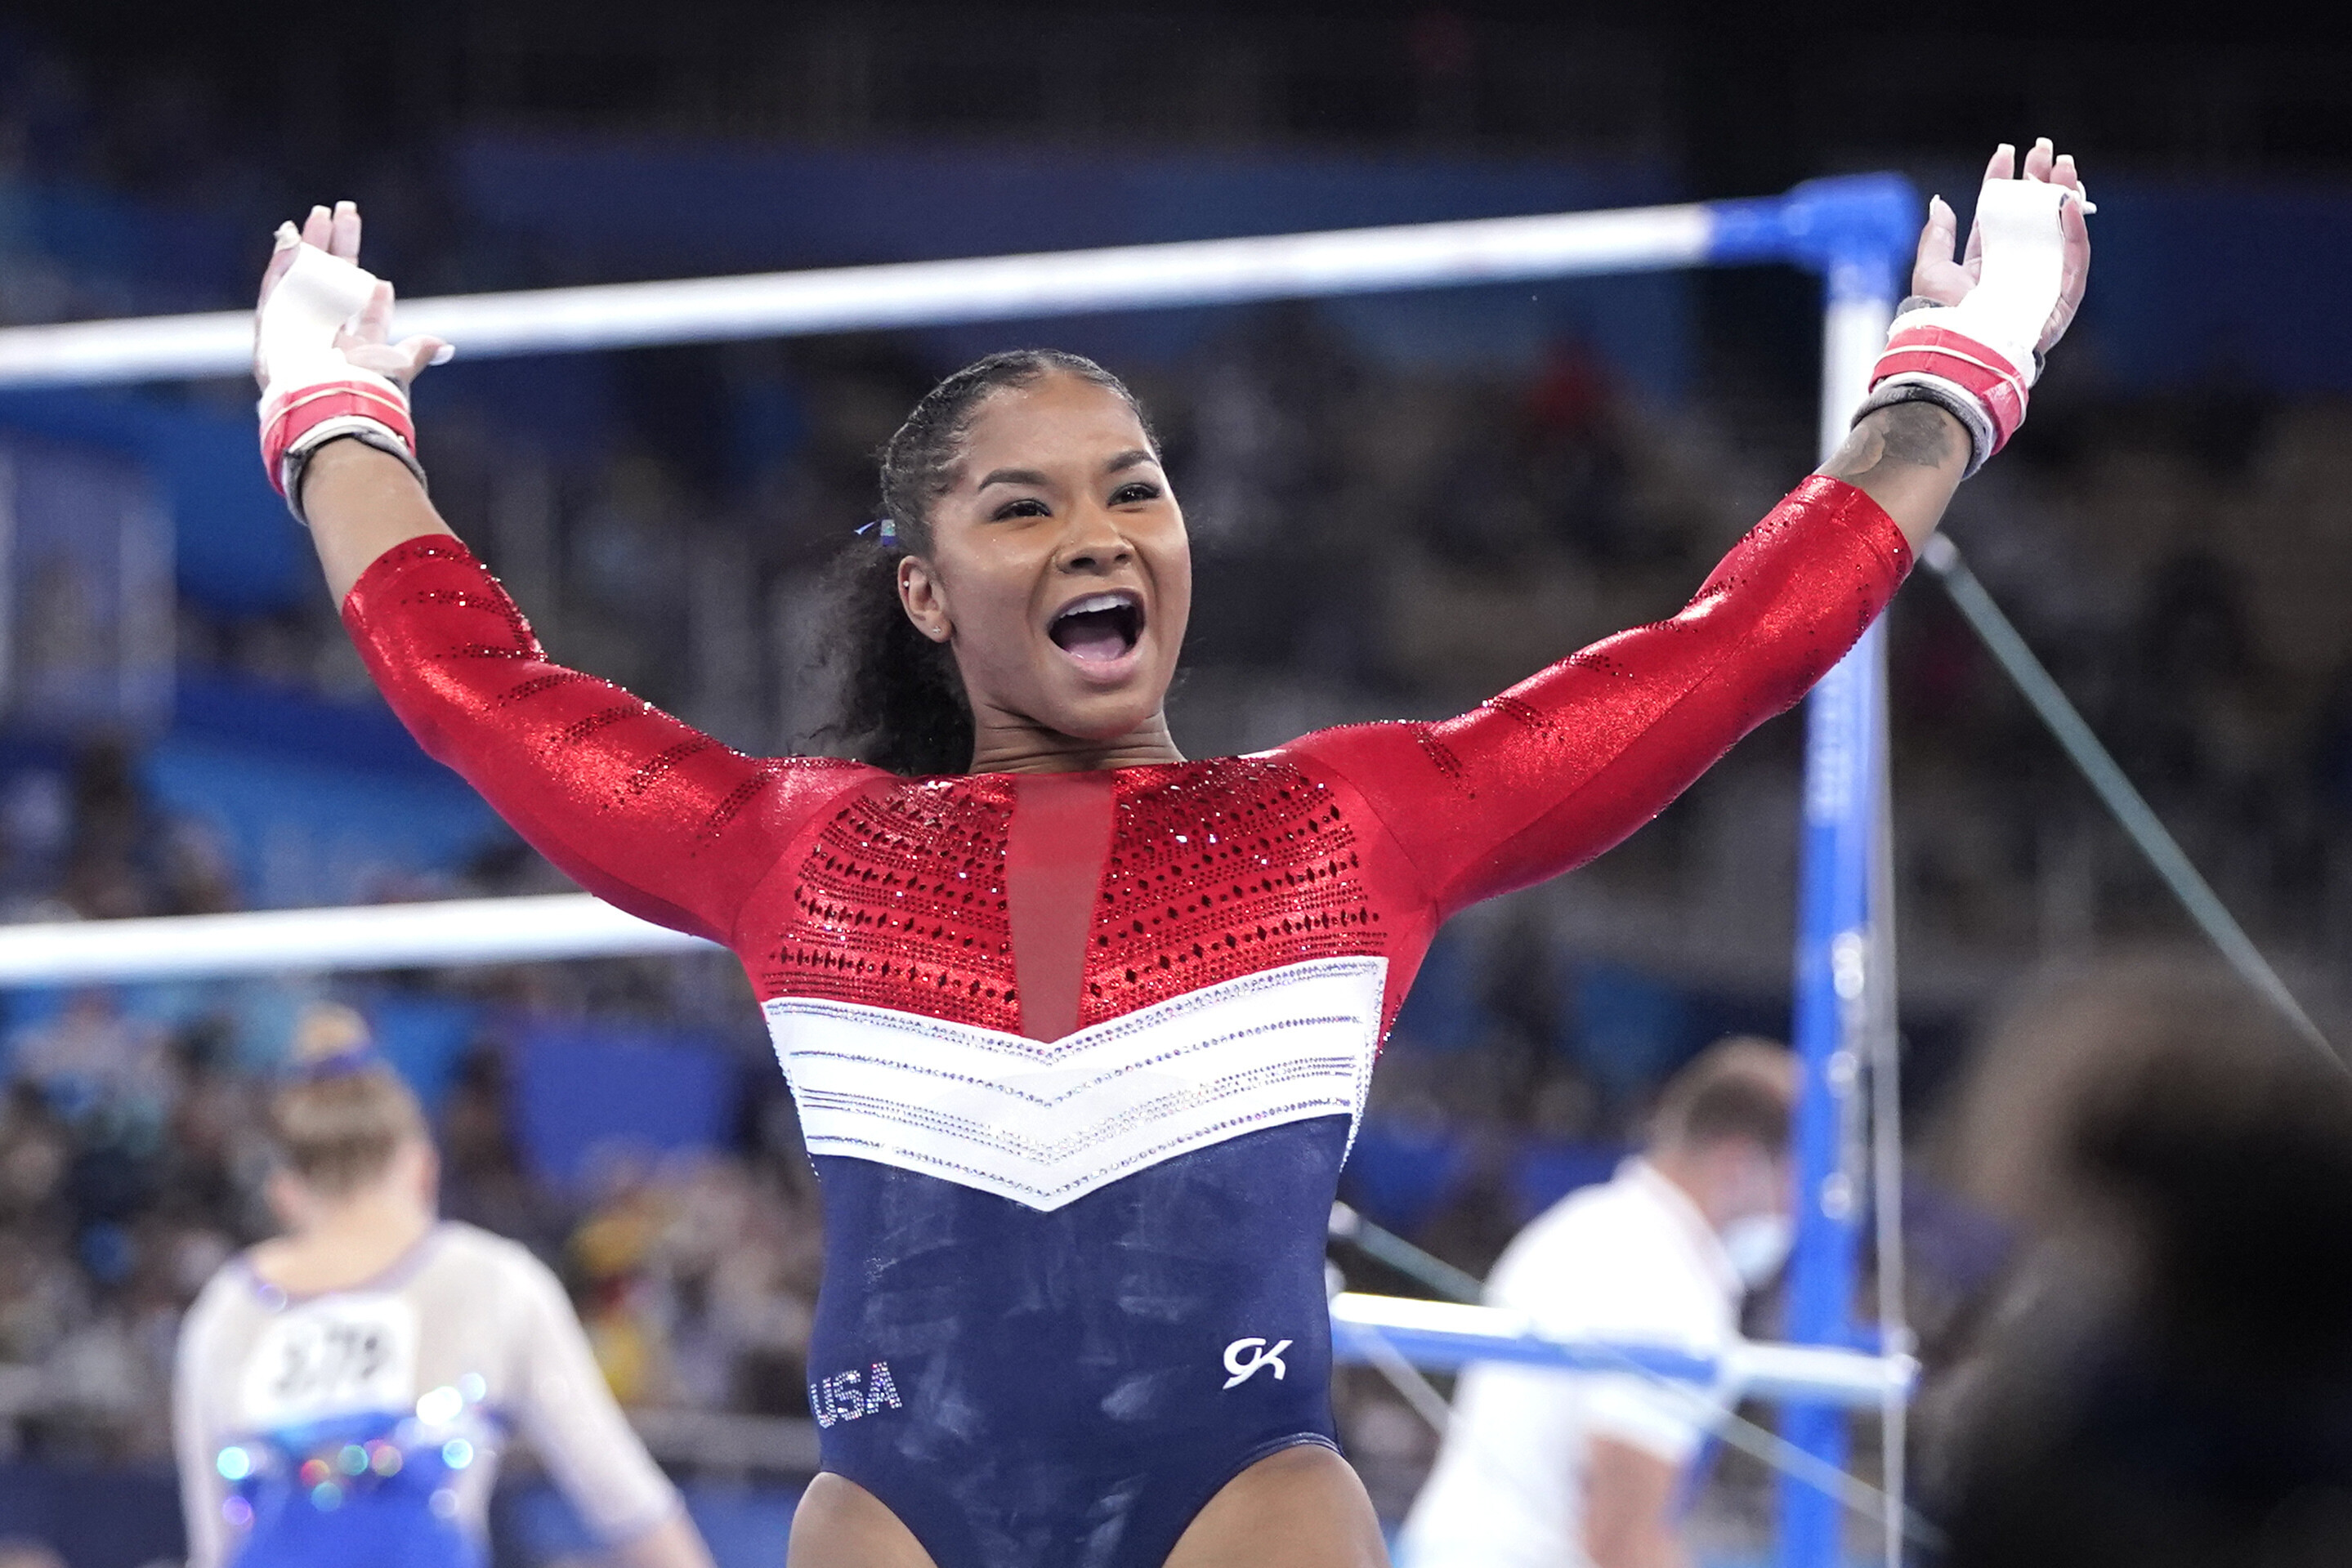 Jordan Chiles stepped in for Team USA after her friend and confidante Simone Biles withdrew